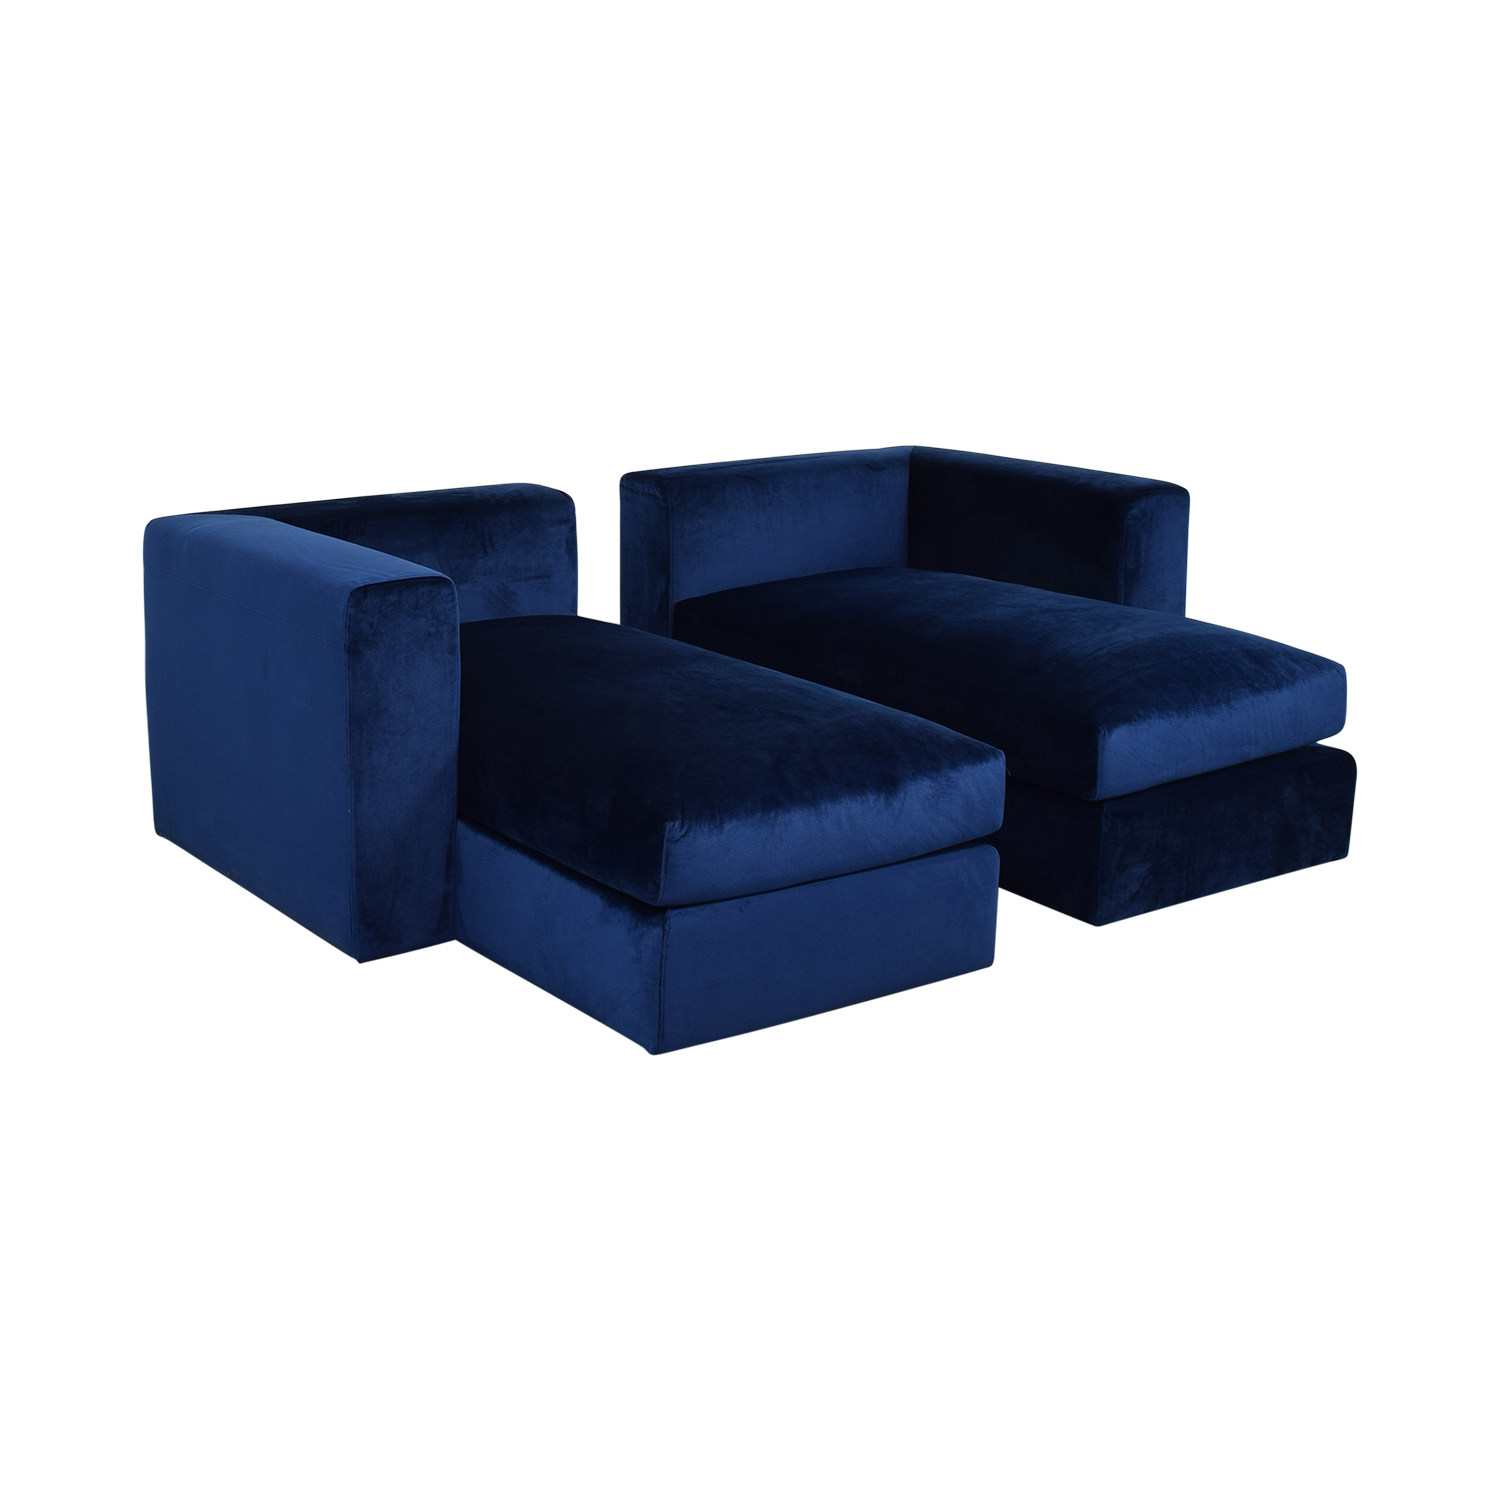 Interior Define Toby Velvet Oxford Blue Double Chaise Sectional Sofa